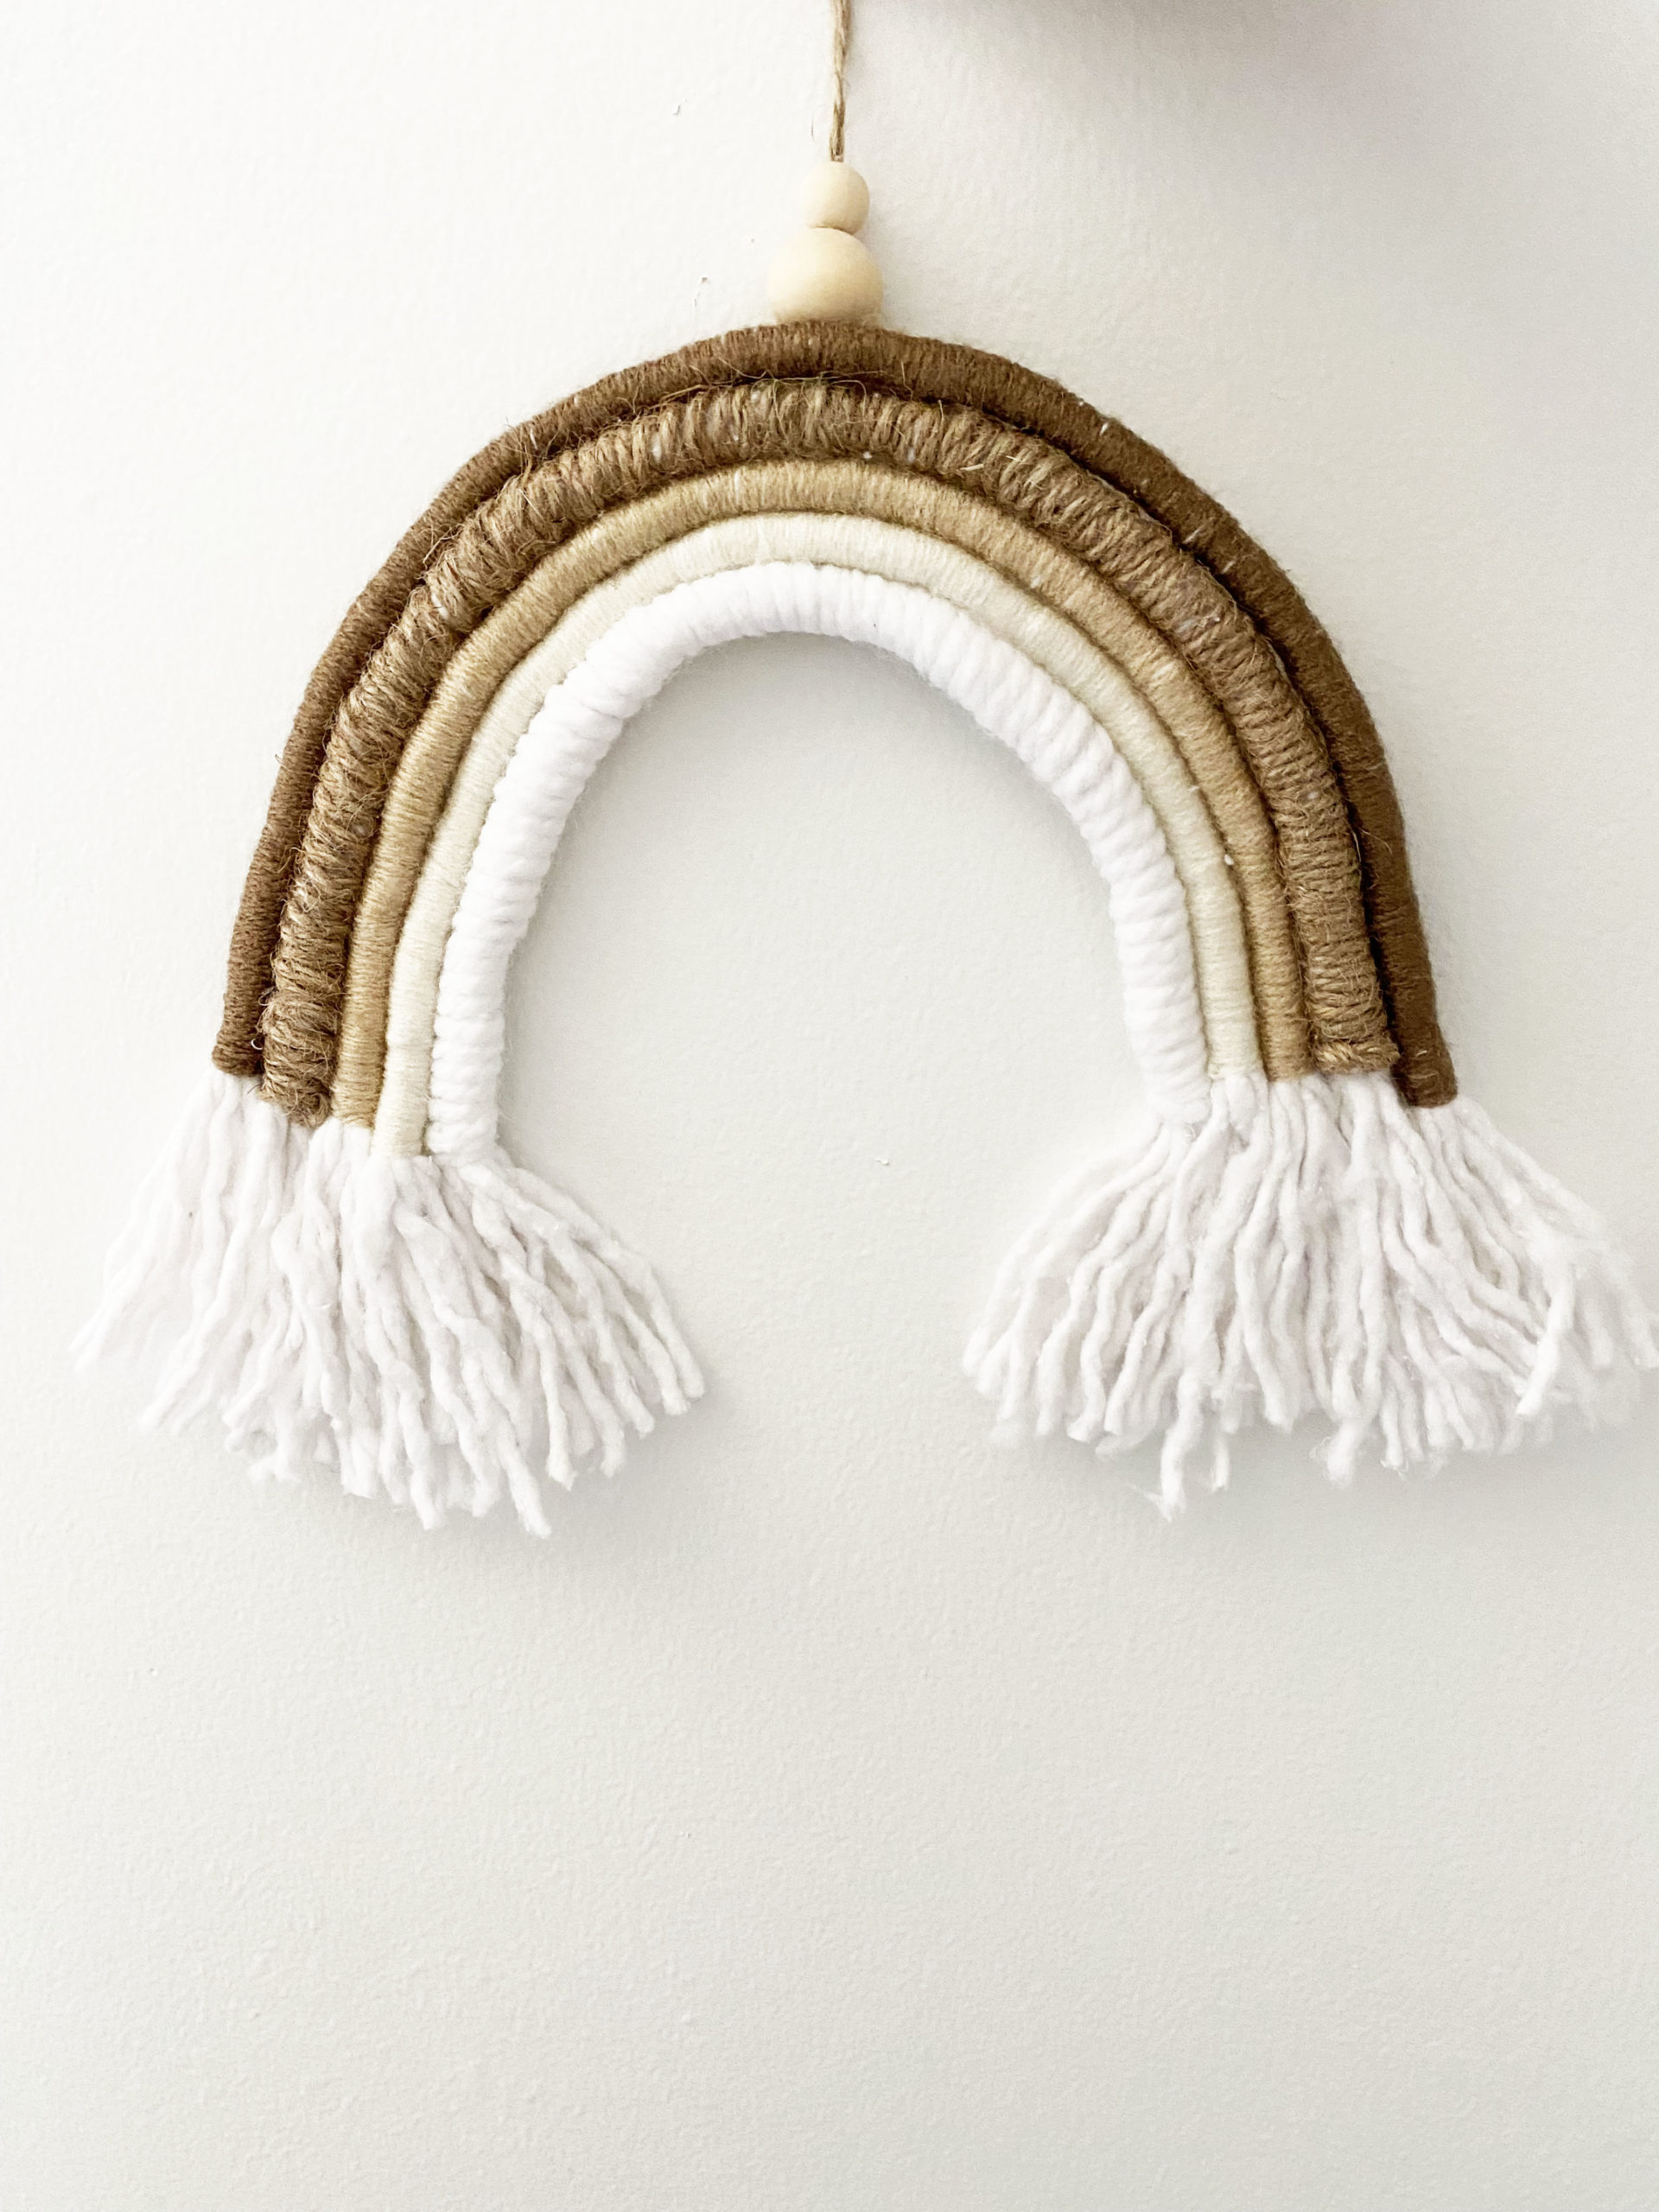 You are currently viewing Macramé Rainbow Wall Hanging DIY